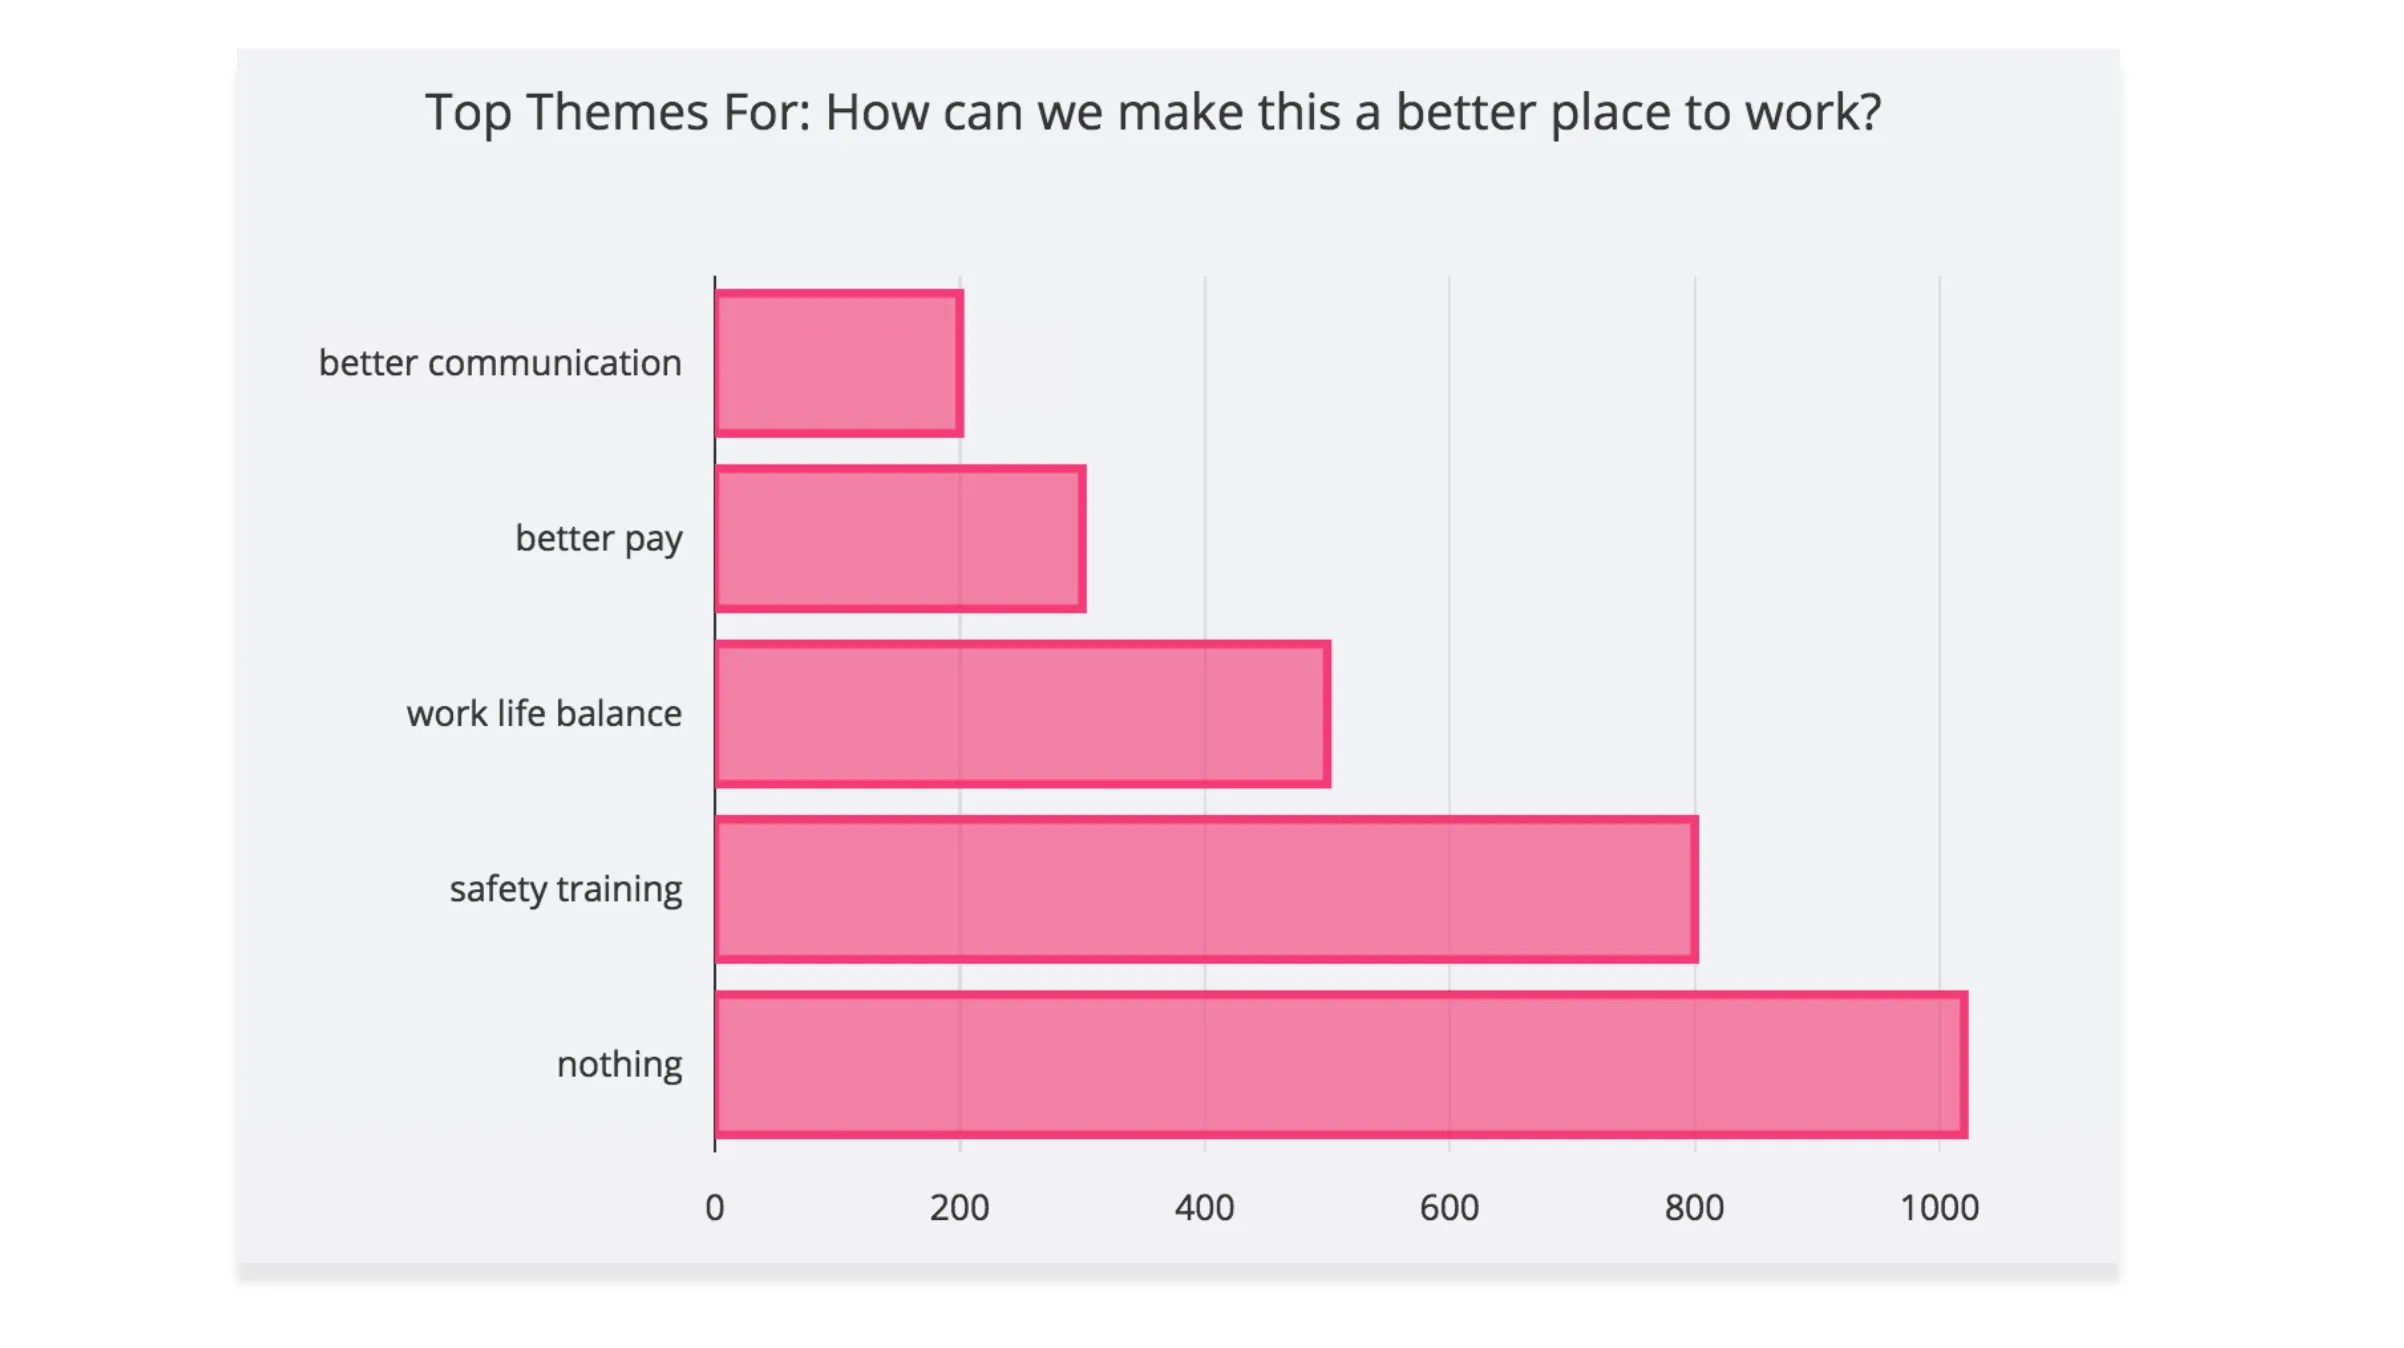 Top Themes from Survey Comments